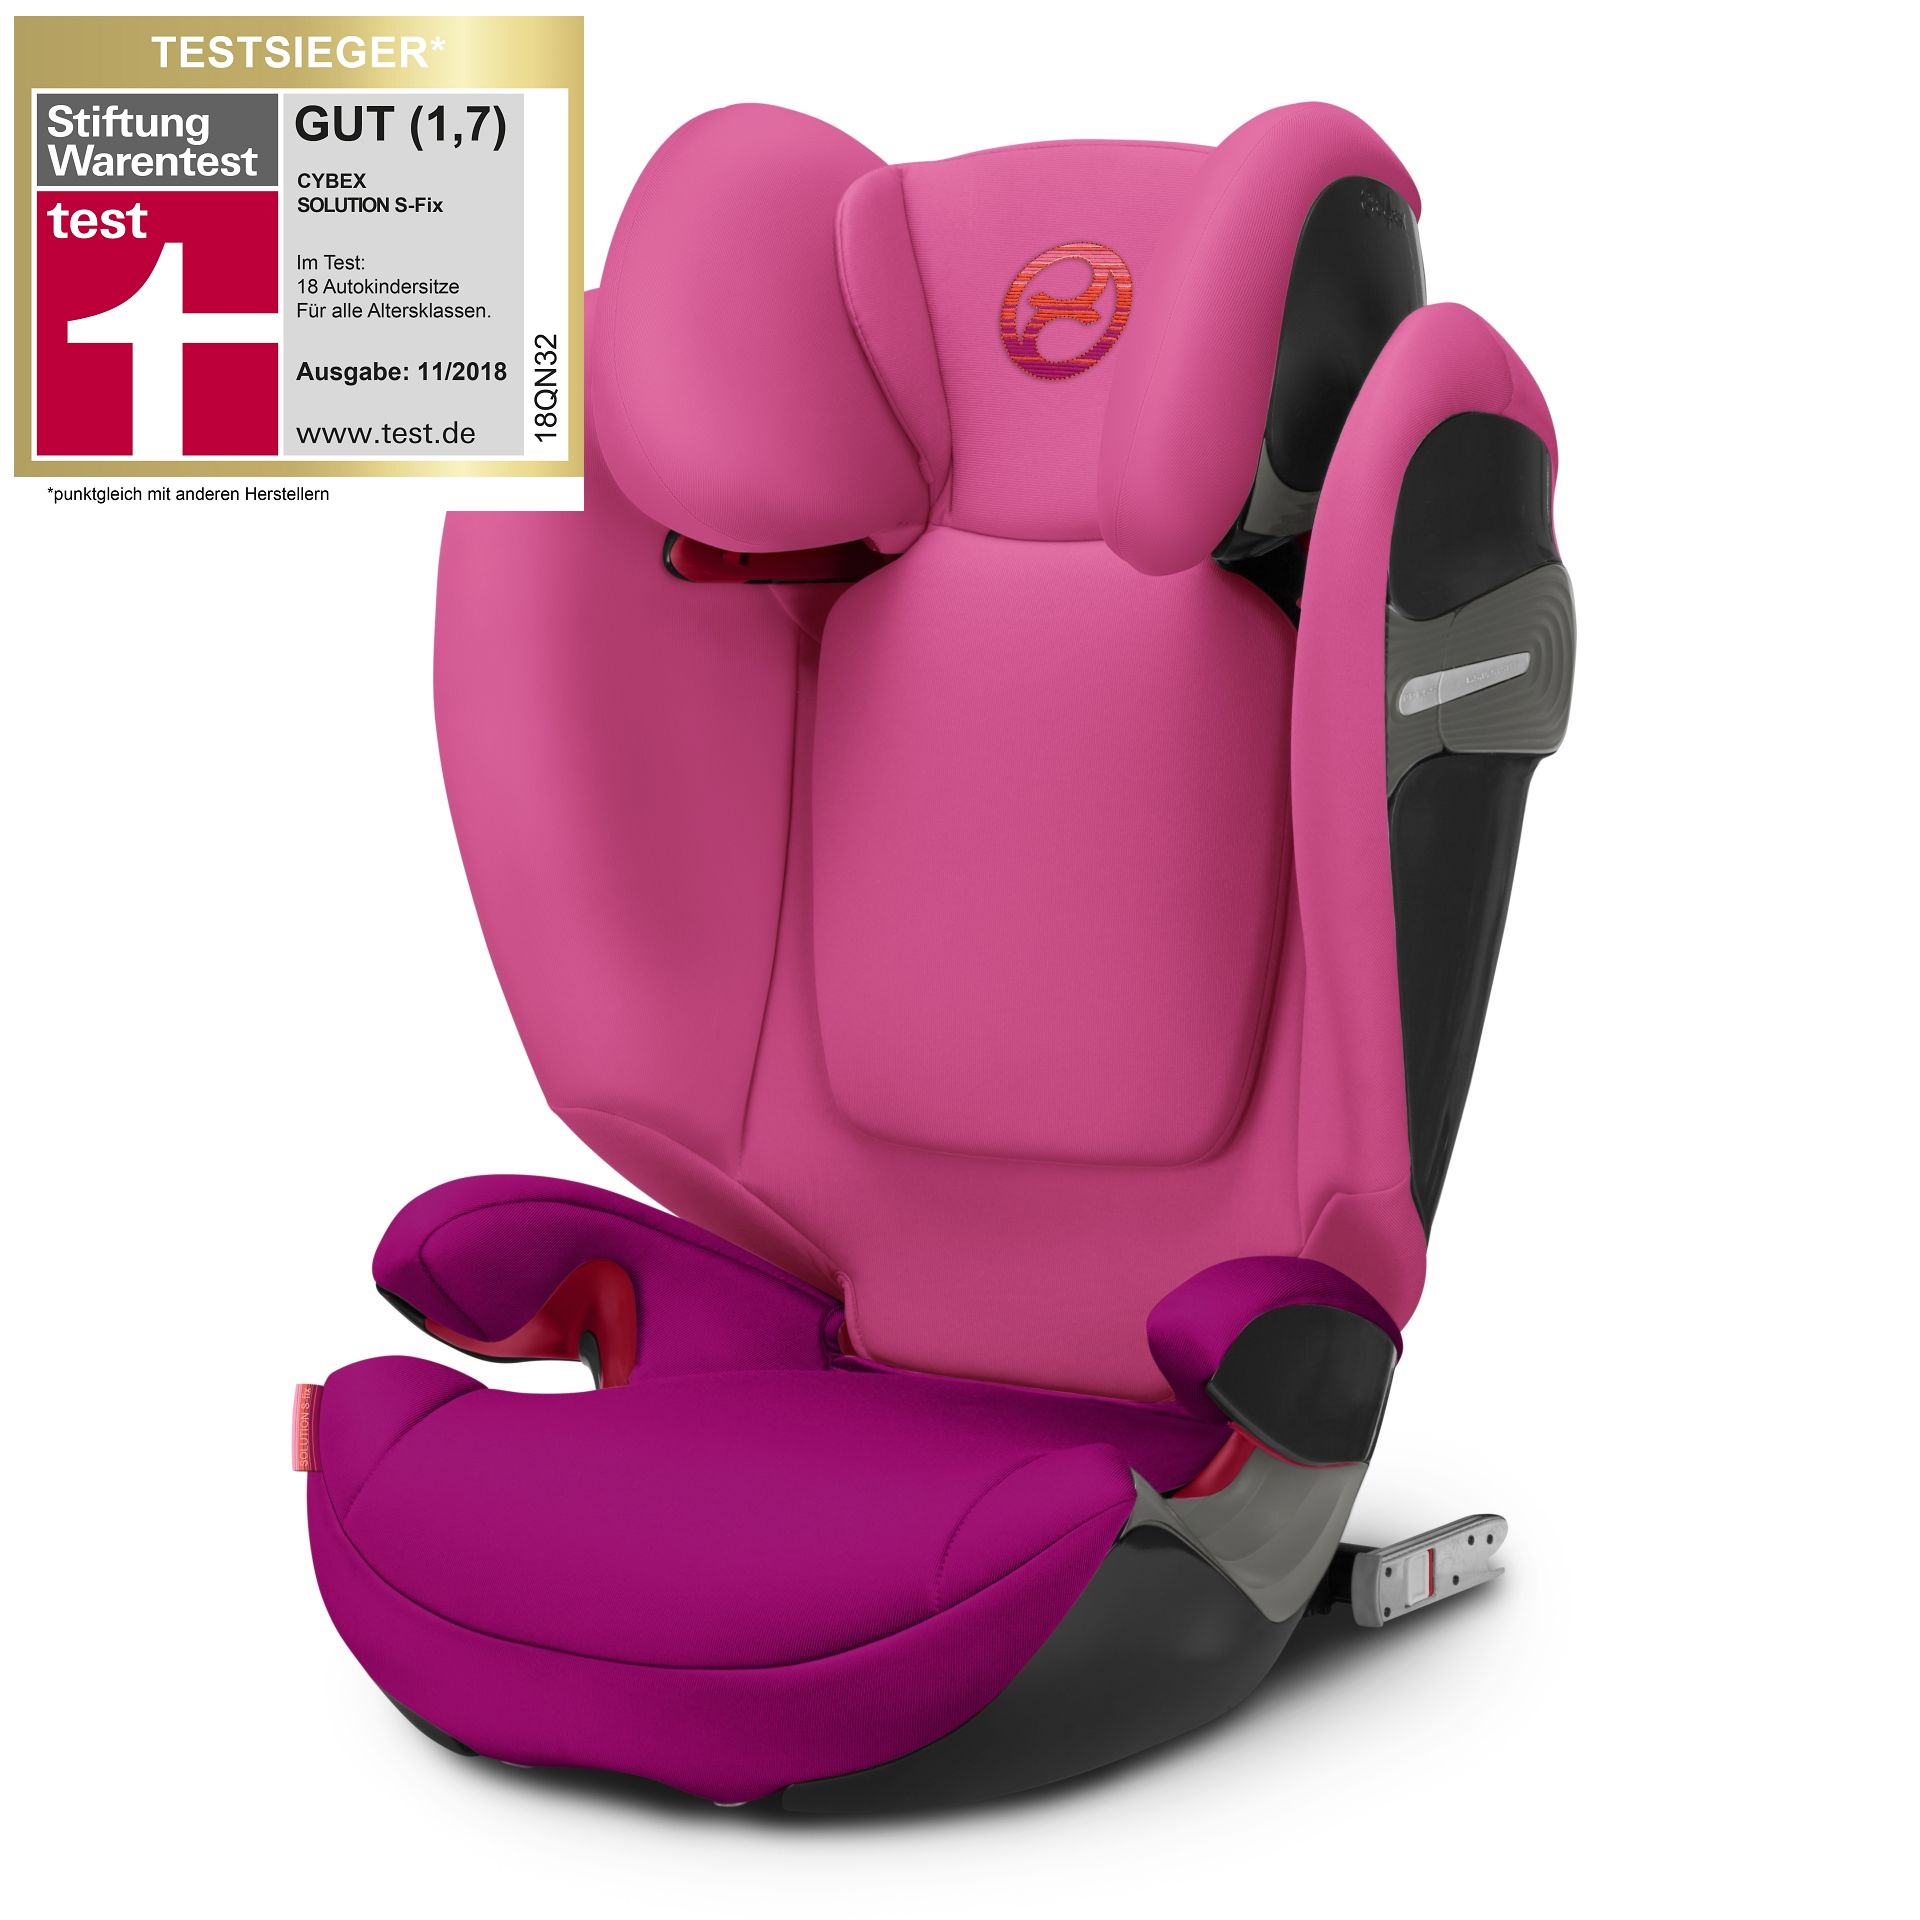 cybex child car seat solution s fix 2018 passion pink. Black Bedroom Furniture Sets. Home Design Ideas